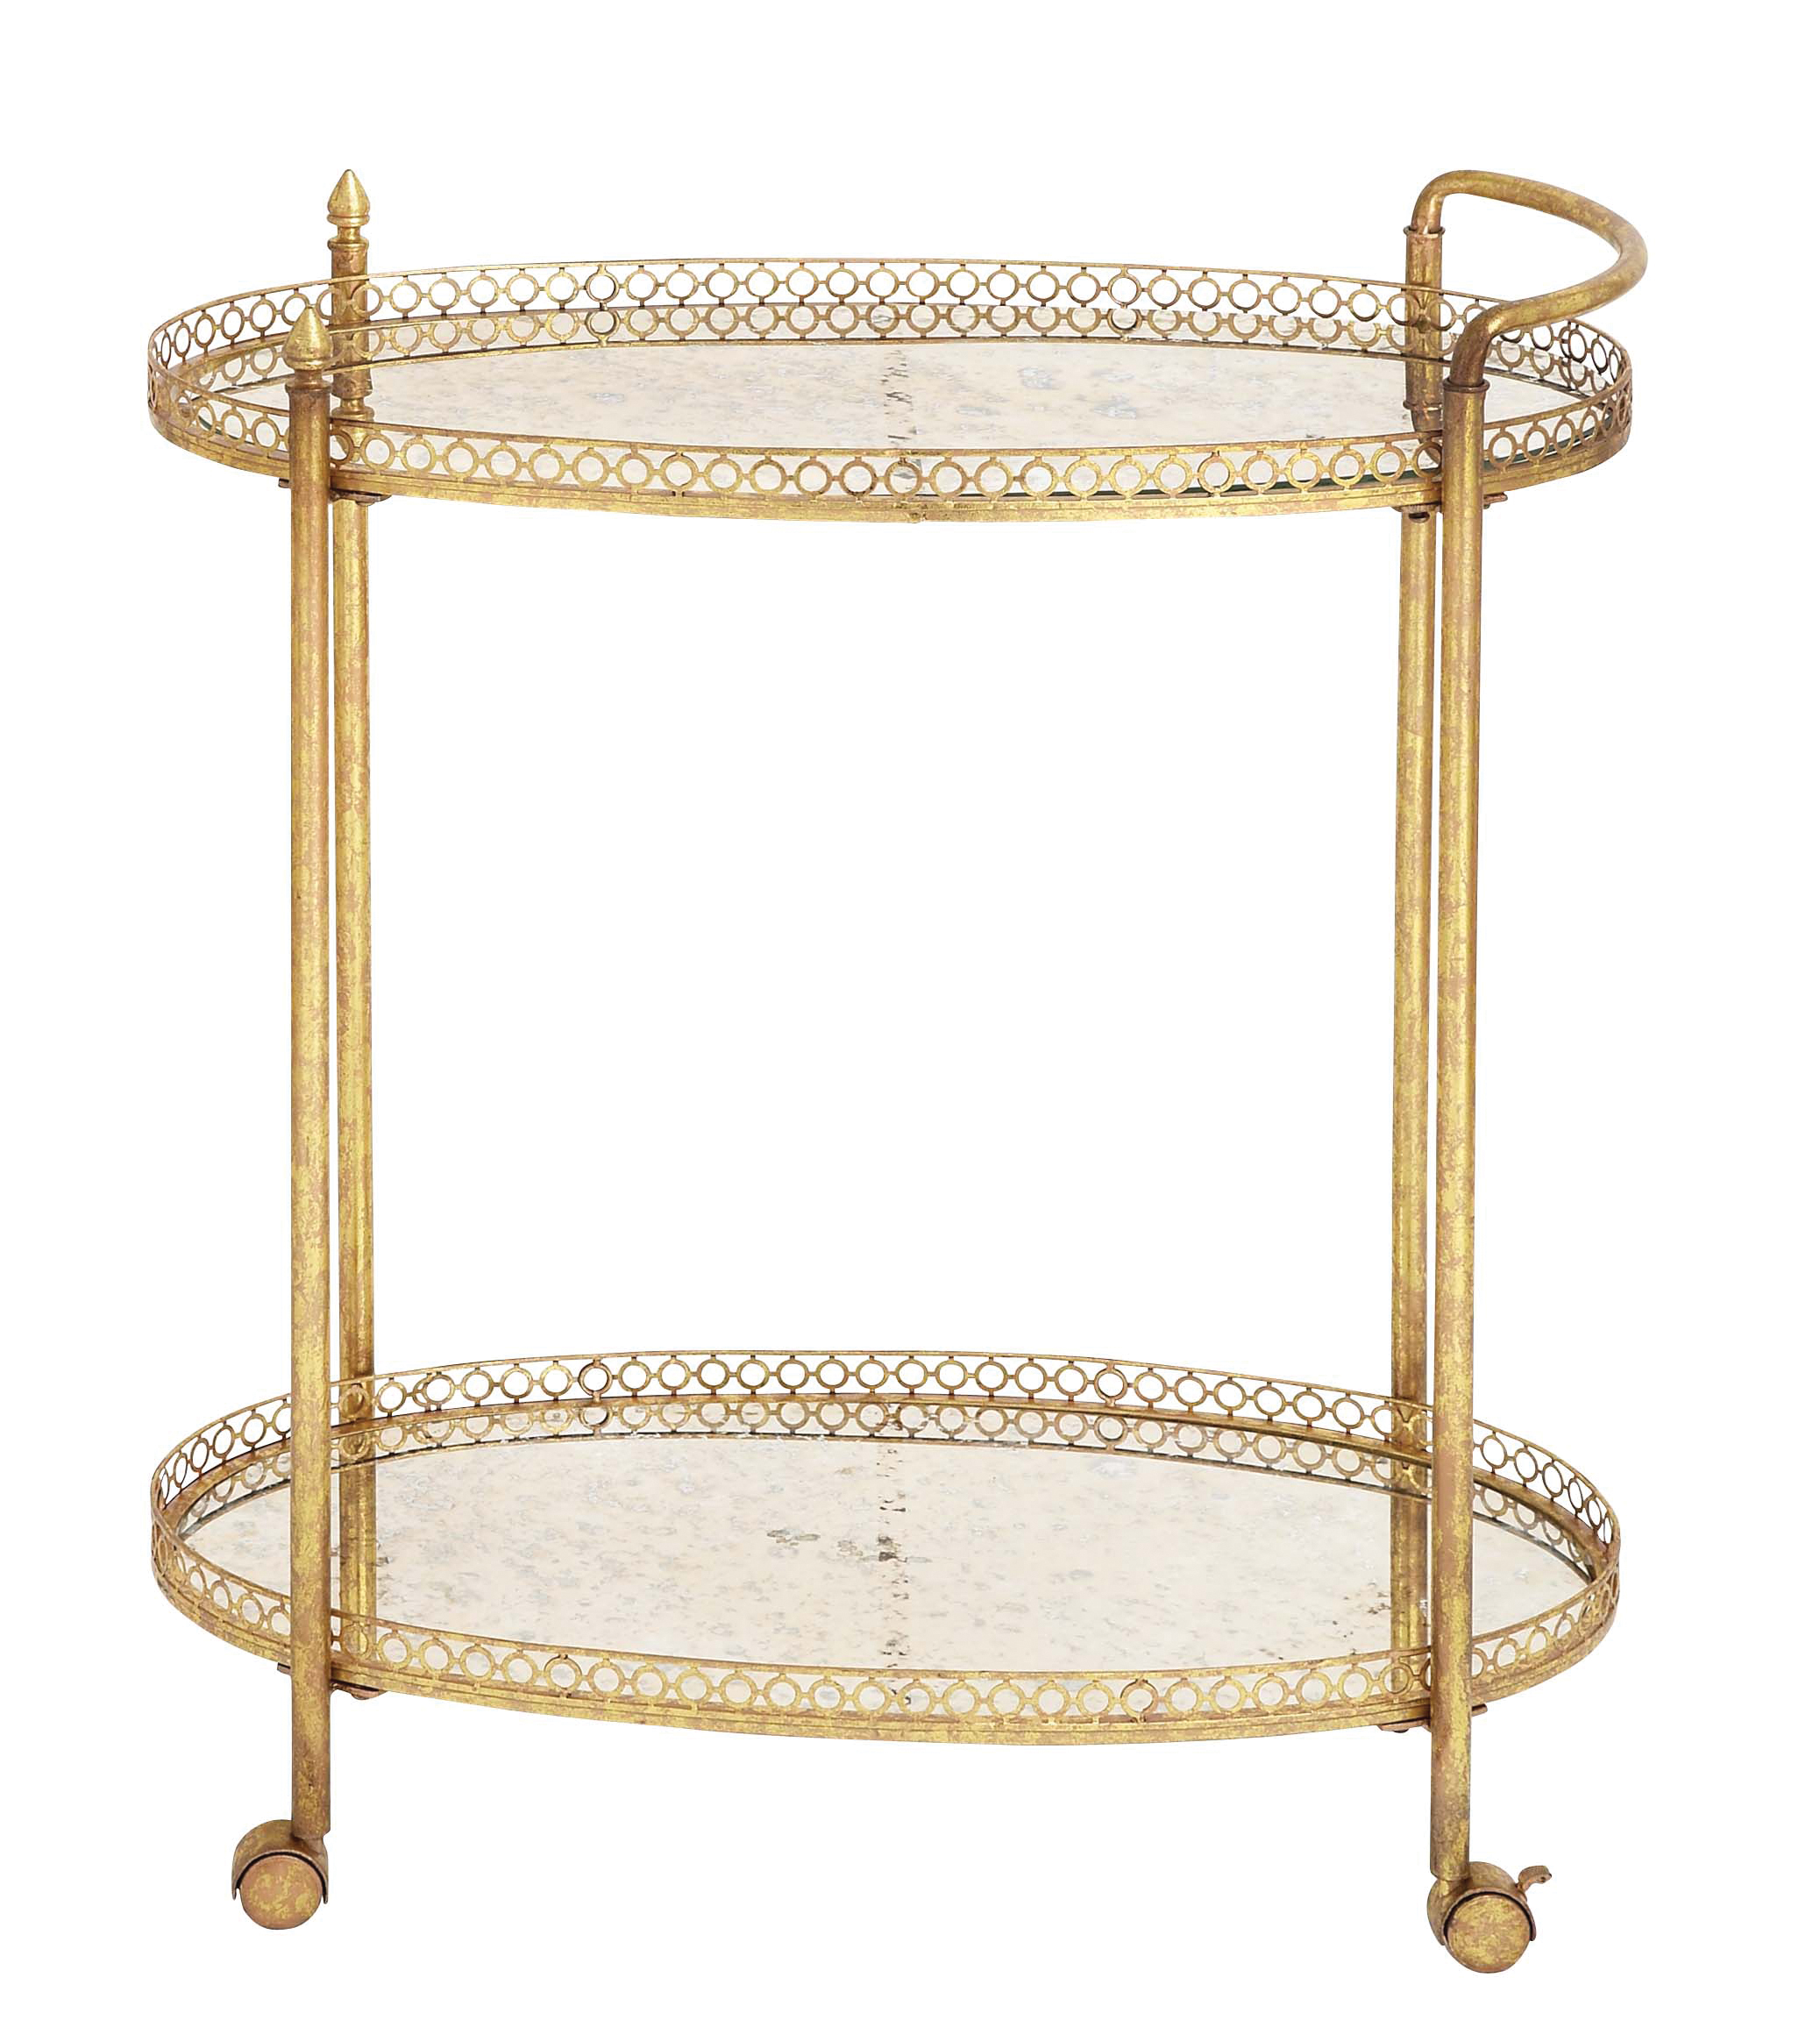 Decmode 35 X 30 Inch Modern Iron and Glass Round Two-Tier Cart, Gold